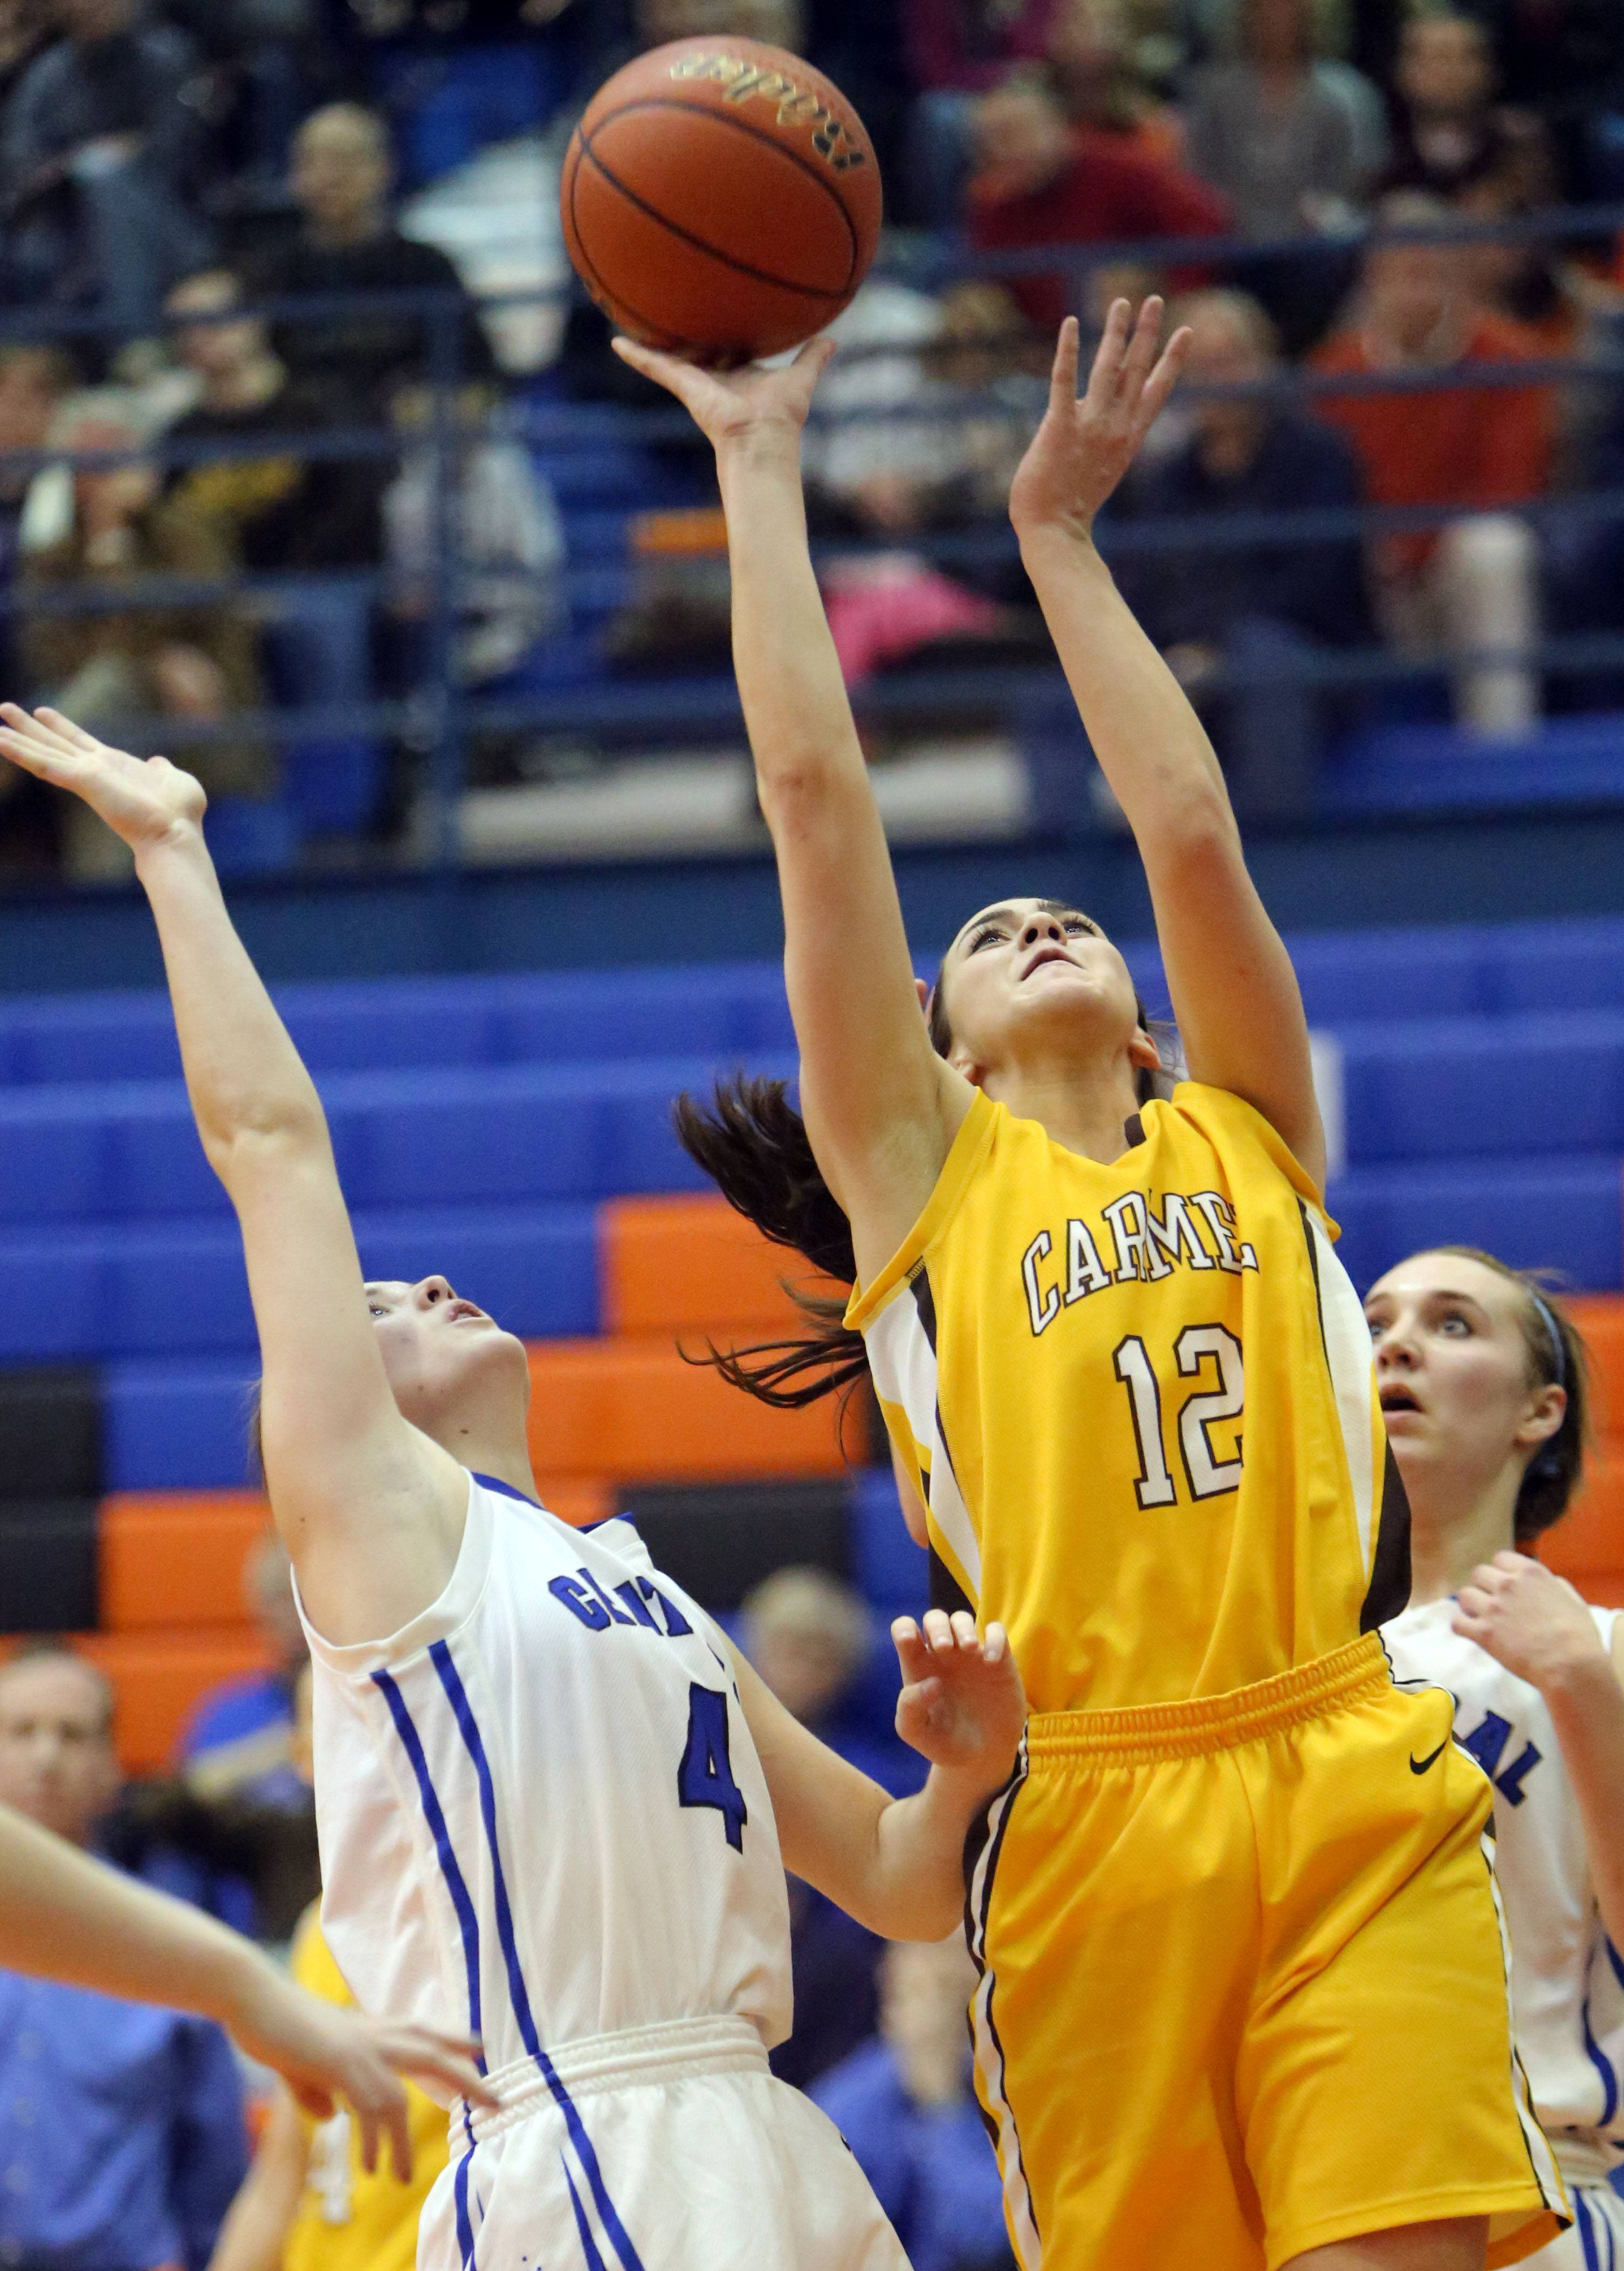 Carmel's Kathleen Felicelli, right, drives on Burlington Central's Kayla Ross during the Class 3A supersectional at Hoffman Estates.